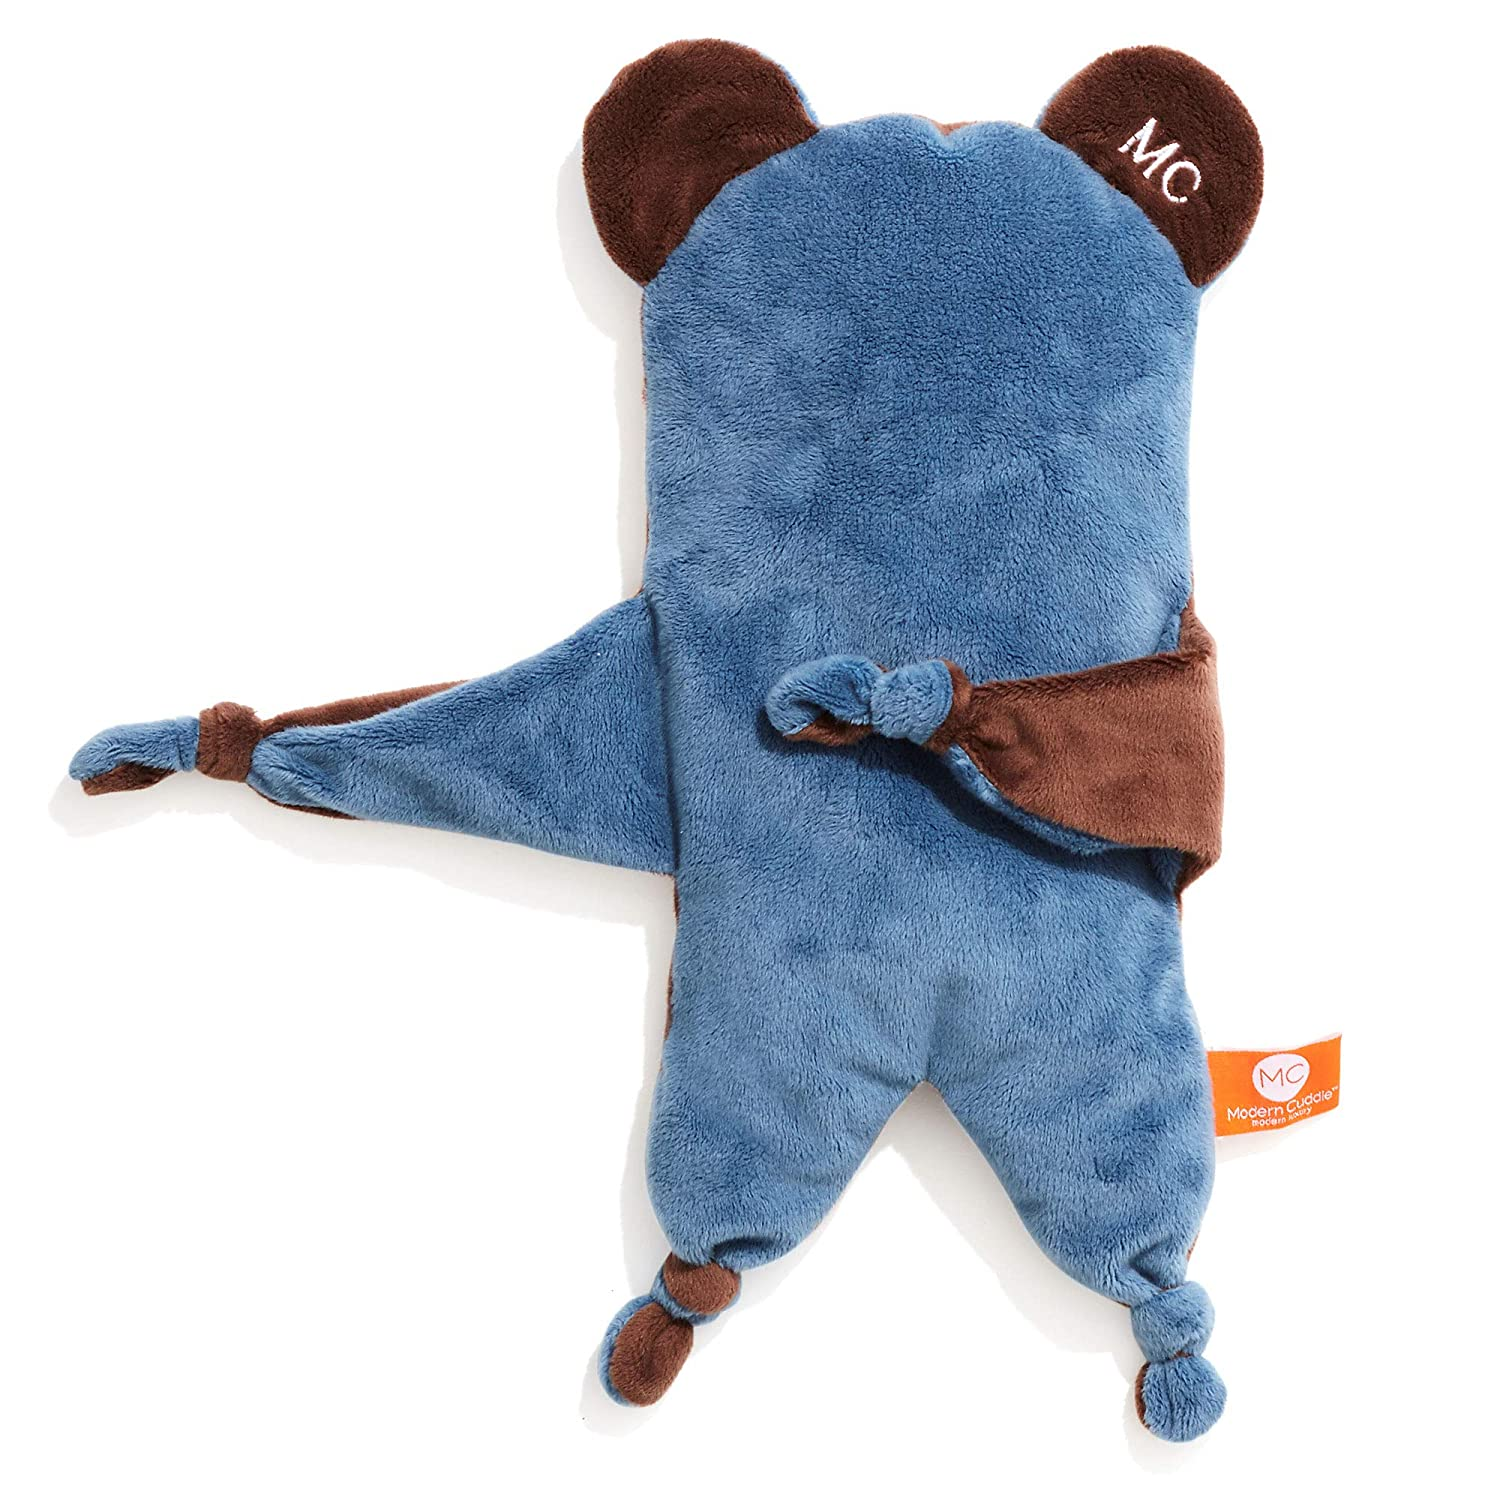 Modern Cuddle Cozy Soft Baby Toys 16 Minky Stuffed Animal Plush Puppy Dog Lovie Blankie Baby Security Blanket Blue Latte